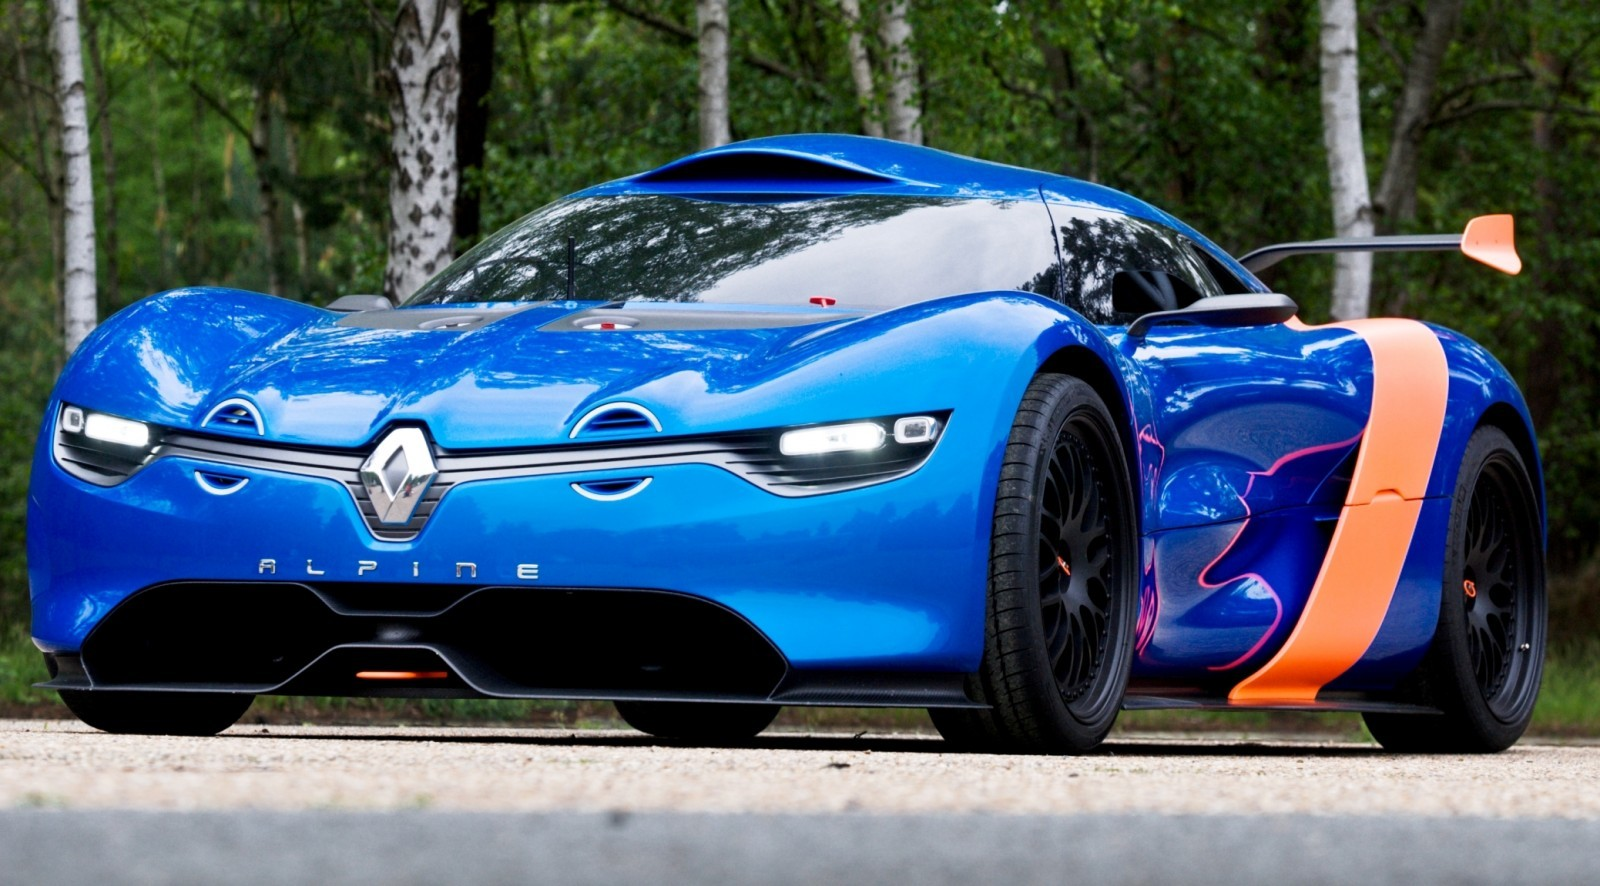 Concept Flashback - 2012 Renault Alpine A110-50 A Blend of M64 and A110 Berlinette 50